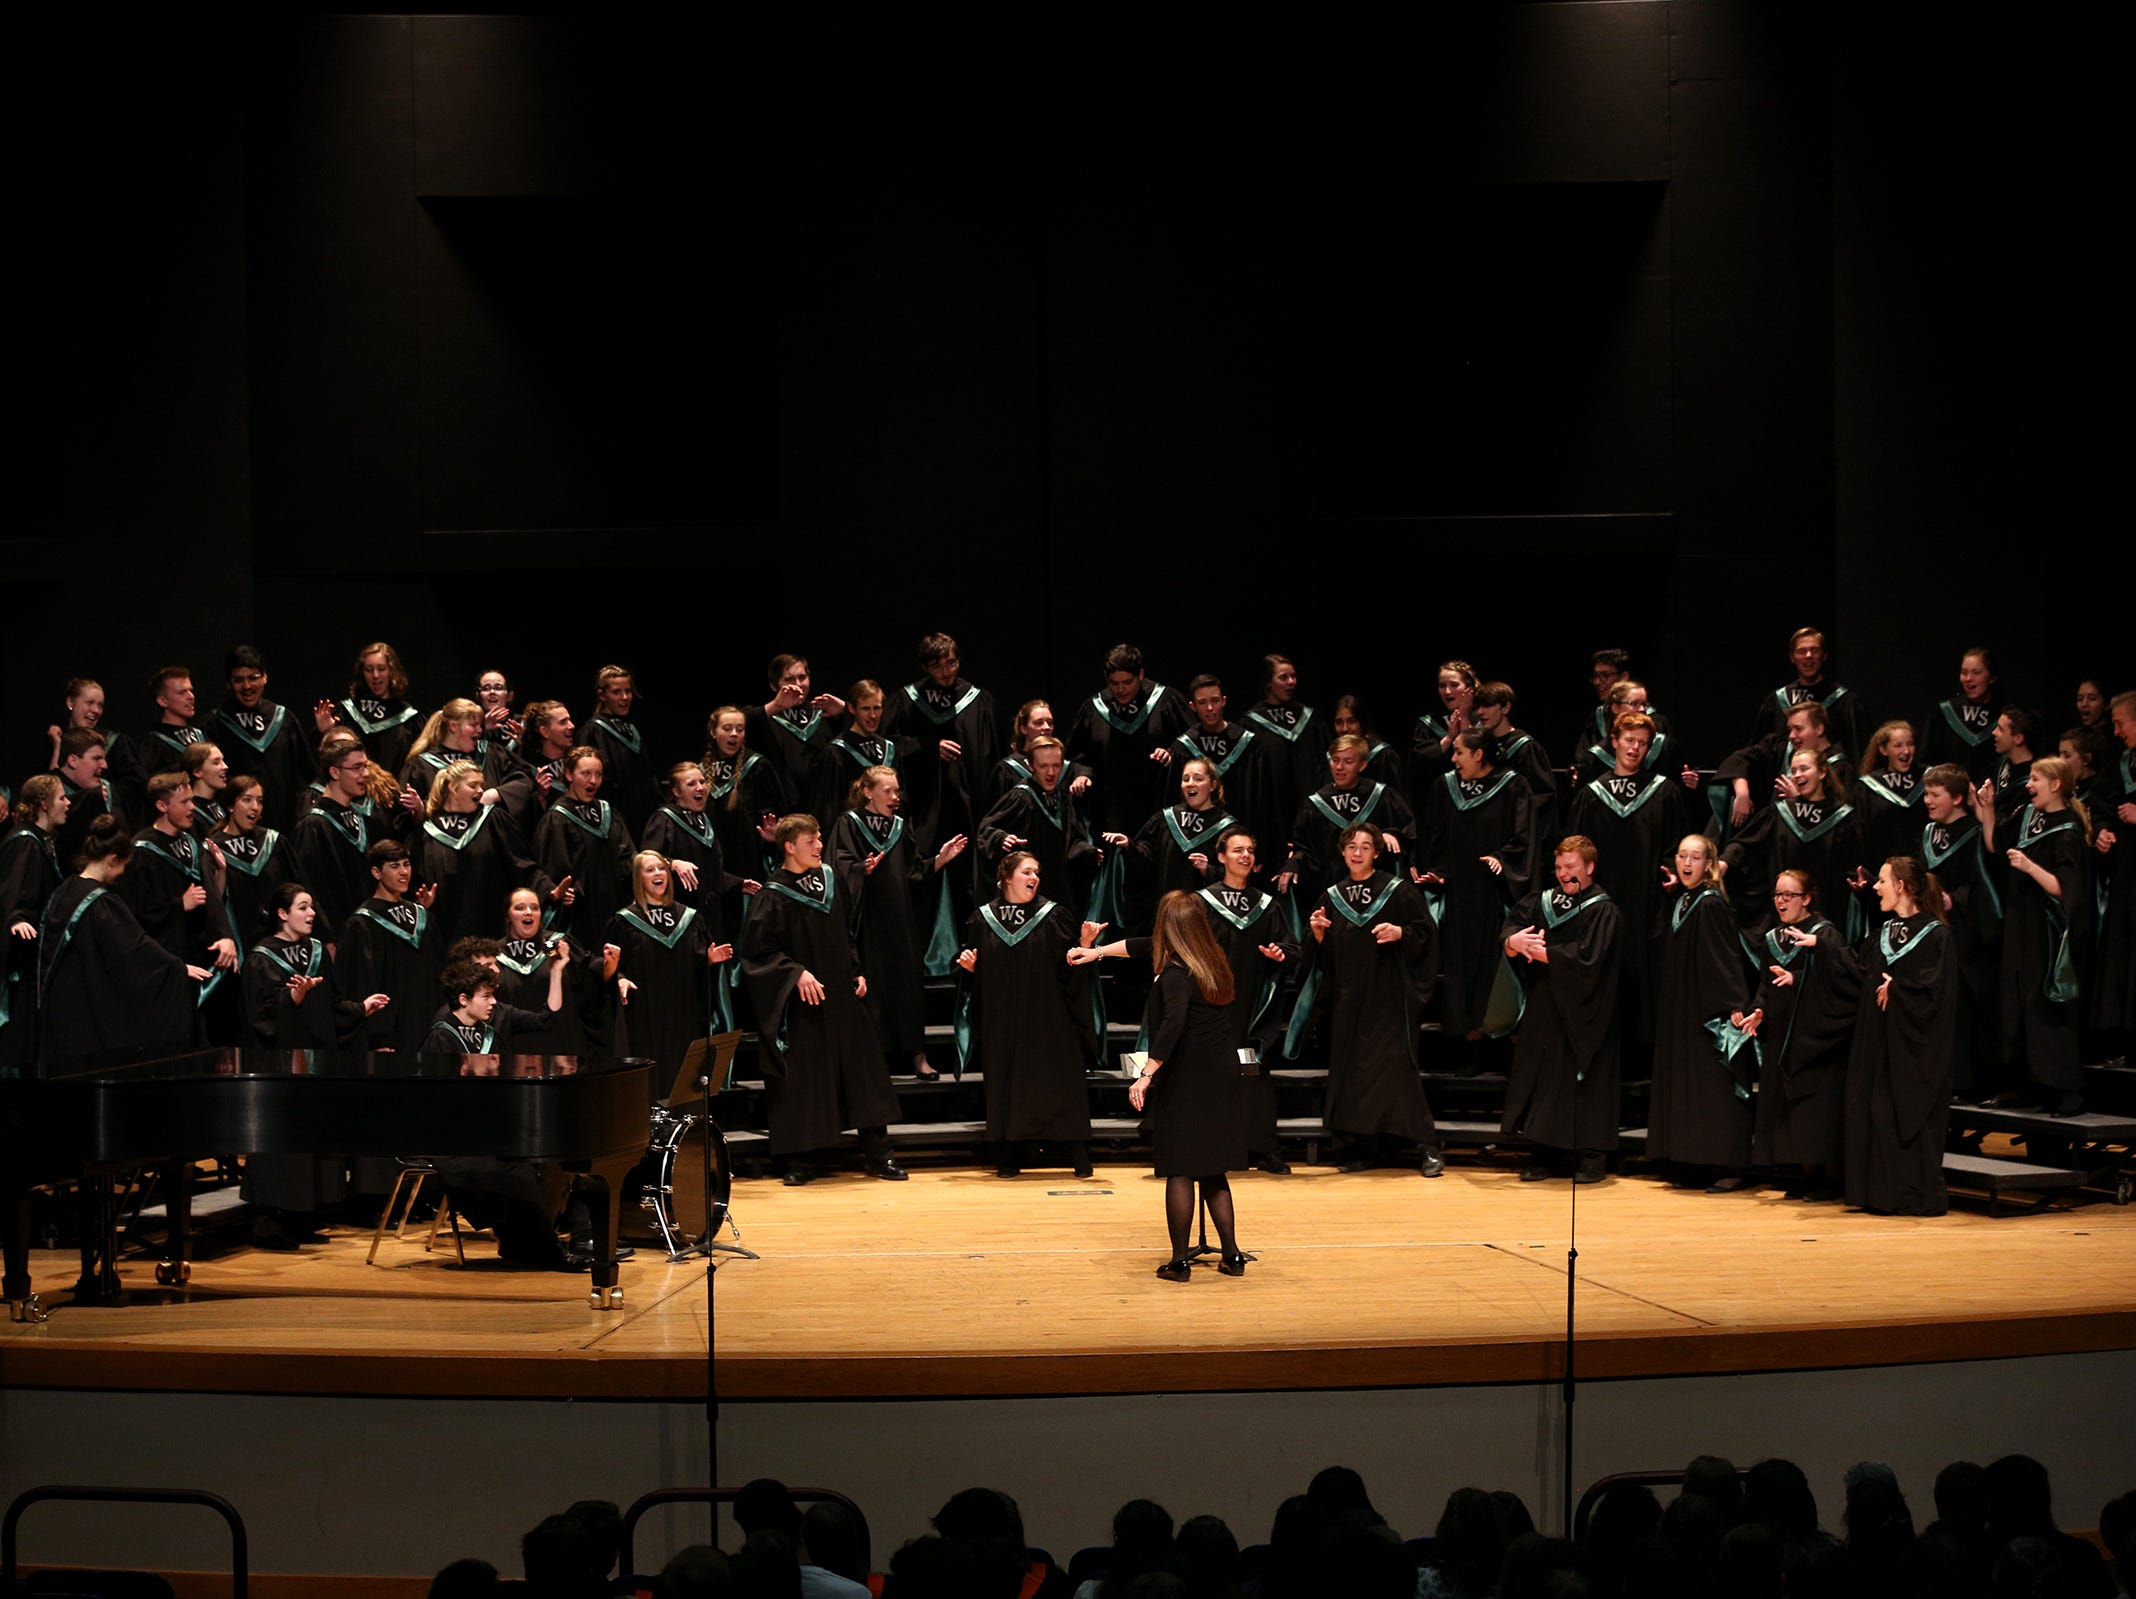 West Salem High School's choir, under the direction of  Kimberly McConnell, performs at the OSAA Choir State Championships at Oregon State University in Corvallis on May 1, 2019.